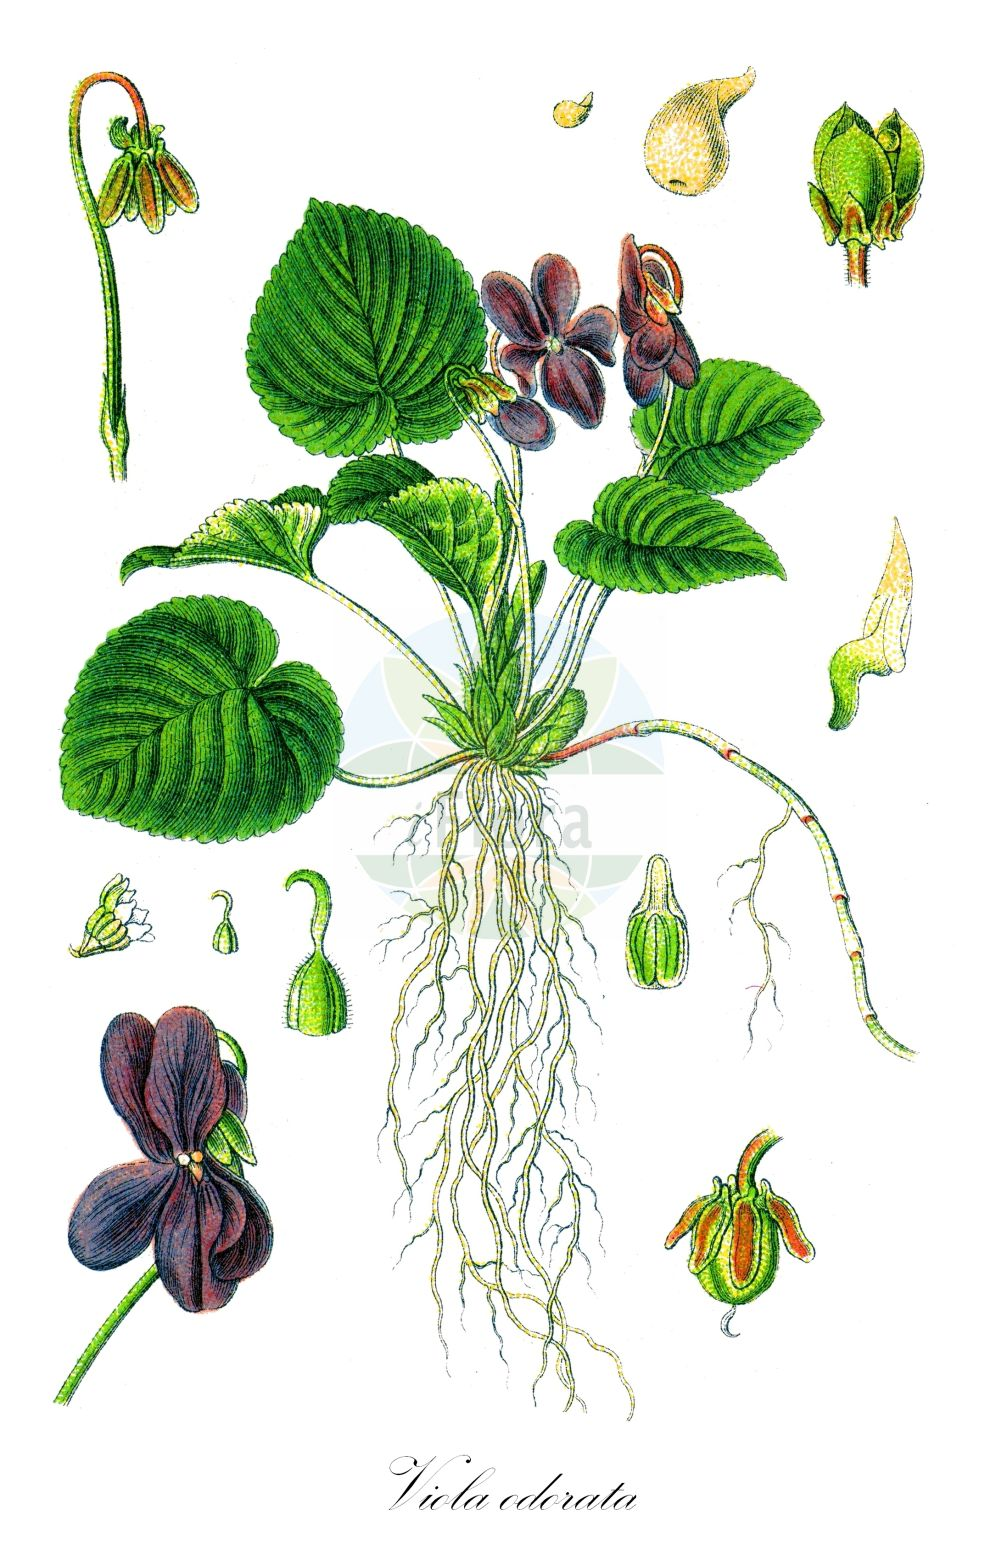 Historische Abbildung von Viola odorata (Duft-Veilchen - Sweet Violet). Das Bild zeigt Blatt, Bluete, Frucht und Same. ---- Historical Drawing of Viola odorata (Duft-Veilchen - Sweet Violet).The image is showing leaf, flower, fruit and seed. (Viola odorata,Duft-Veilchen,Sweet Violet,Viola maderensis,Viola stolonifera,Viola wiedemannii,Wohlriechendes Veilchen,English Violet,Viola,Veilchen,violet,Violaceae,Veilchengewaechse,Violet family,Blatt,Bluete,Frucht,Same,leaf,flower,fruit,seed,Sturm (1796f))